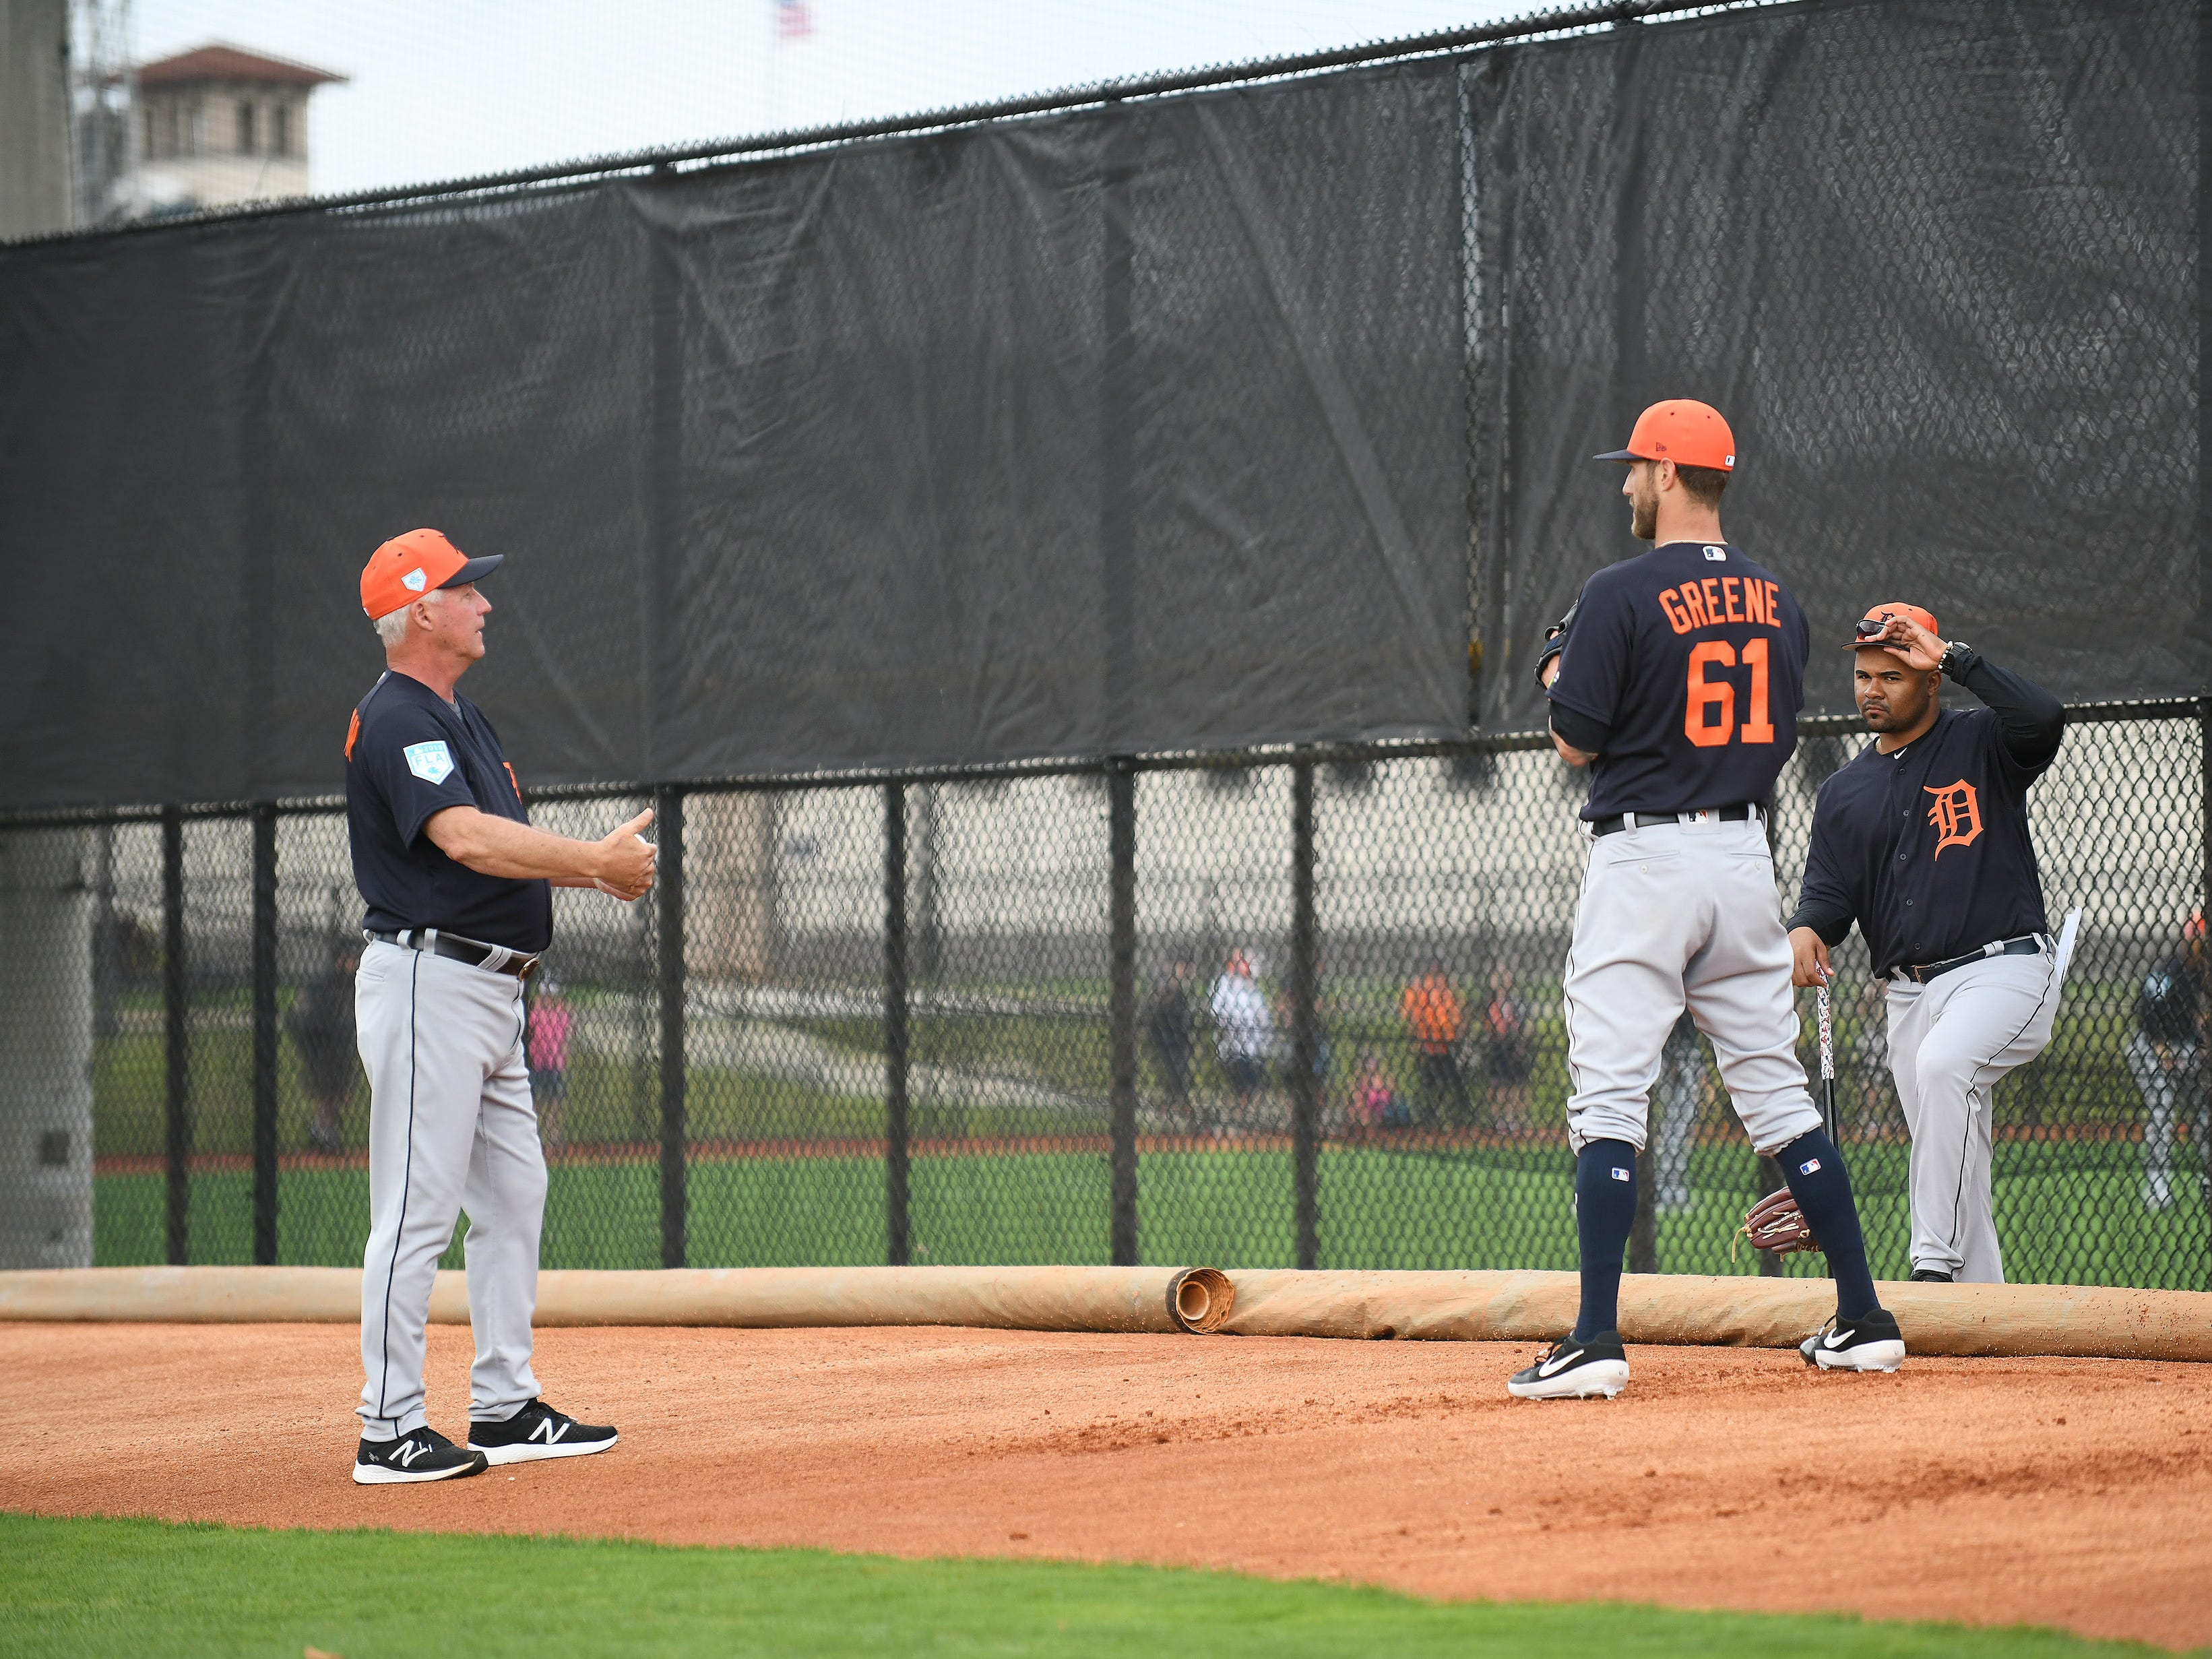 Tigers pitching coach Rick Anderson, left, talks with pitcher Shane Greene during a bullpen session during the  Tigers workout Wednesday, Feb. 20, 2019, at spring training in Lakeland, Fla.